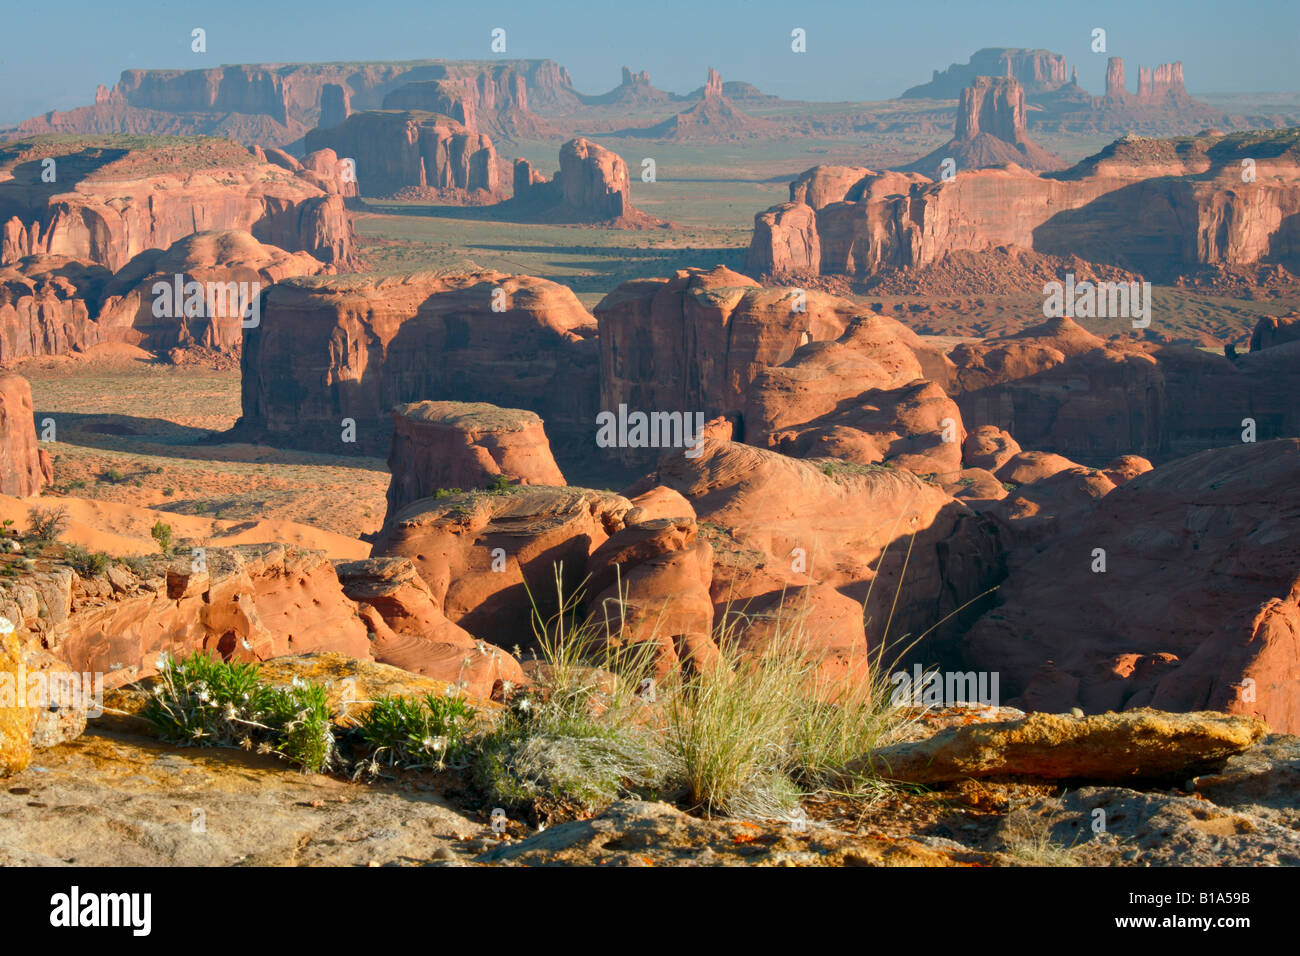 Wildflowers on Hunts Mesa in Monument Valley AZ - Stock Image